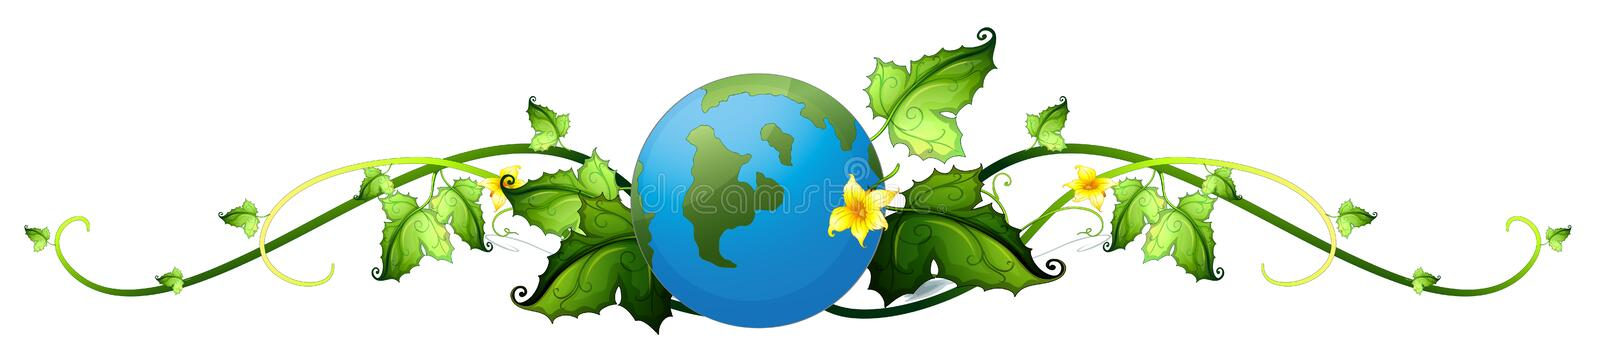 A vine plant border with the earth royalty free illustration